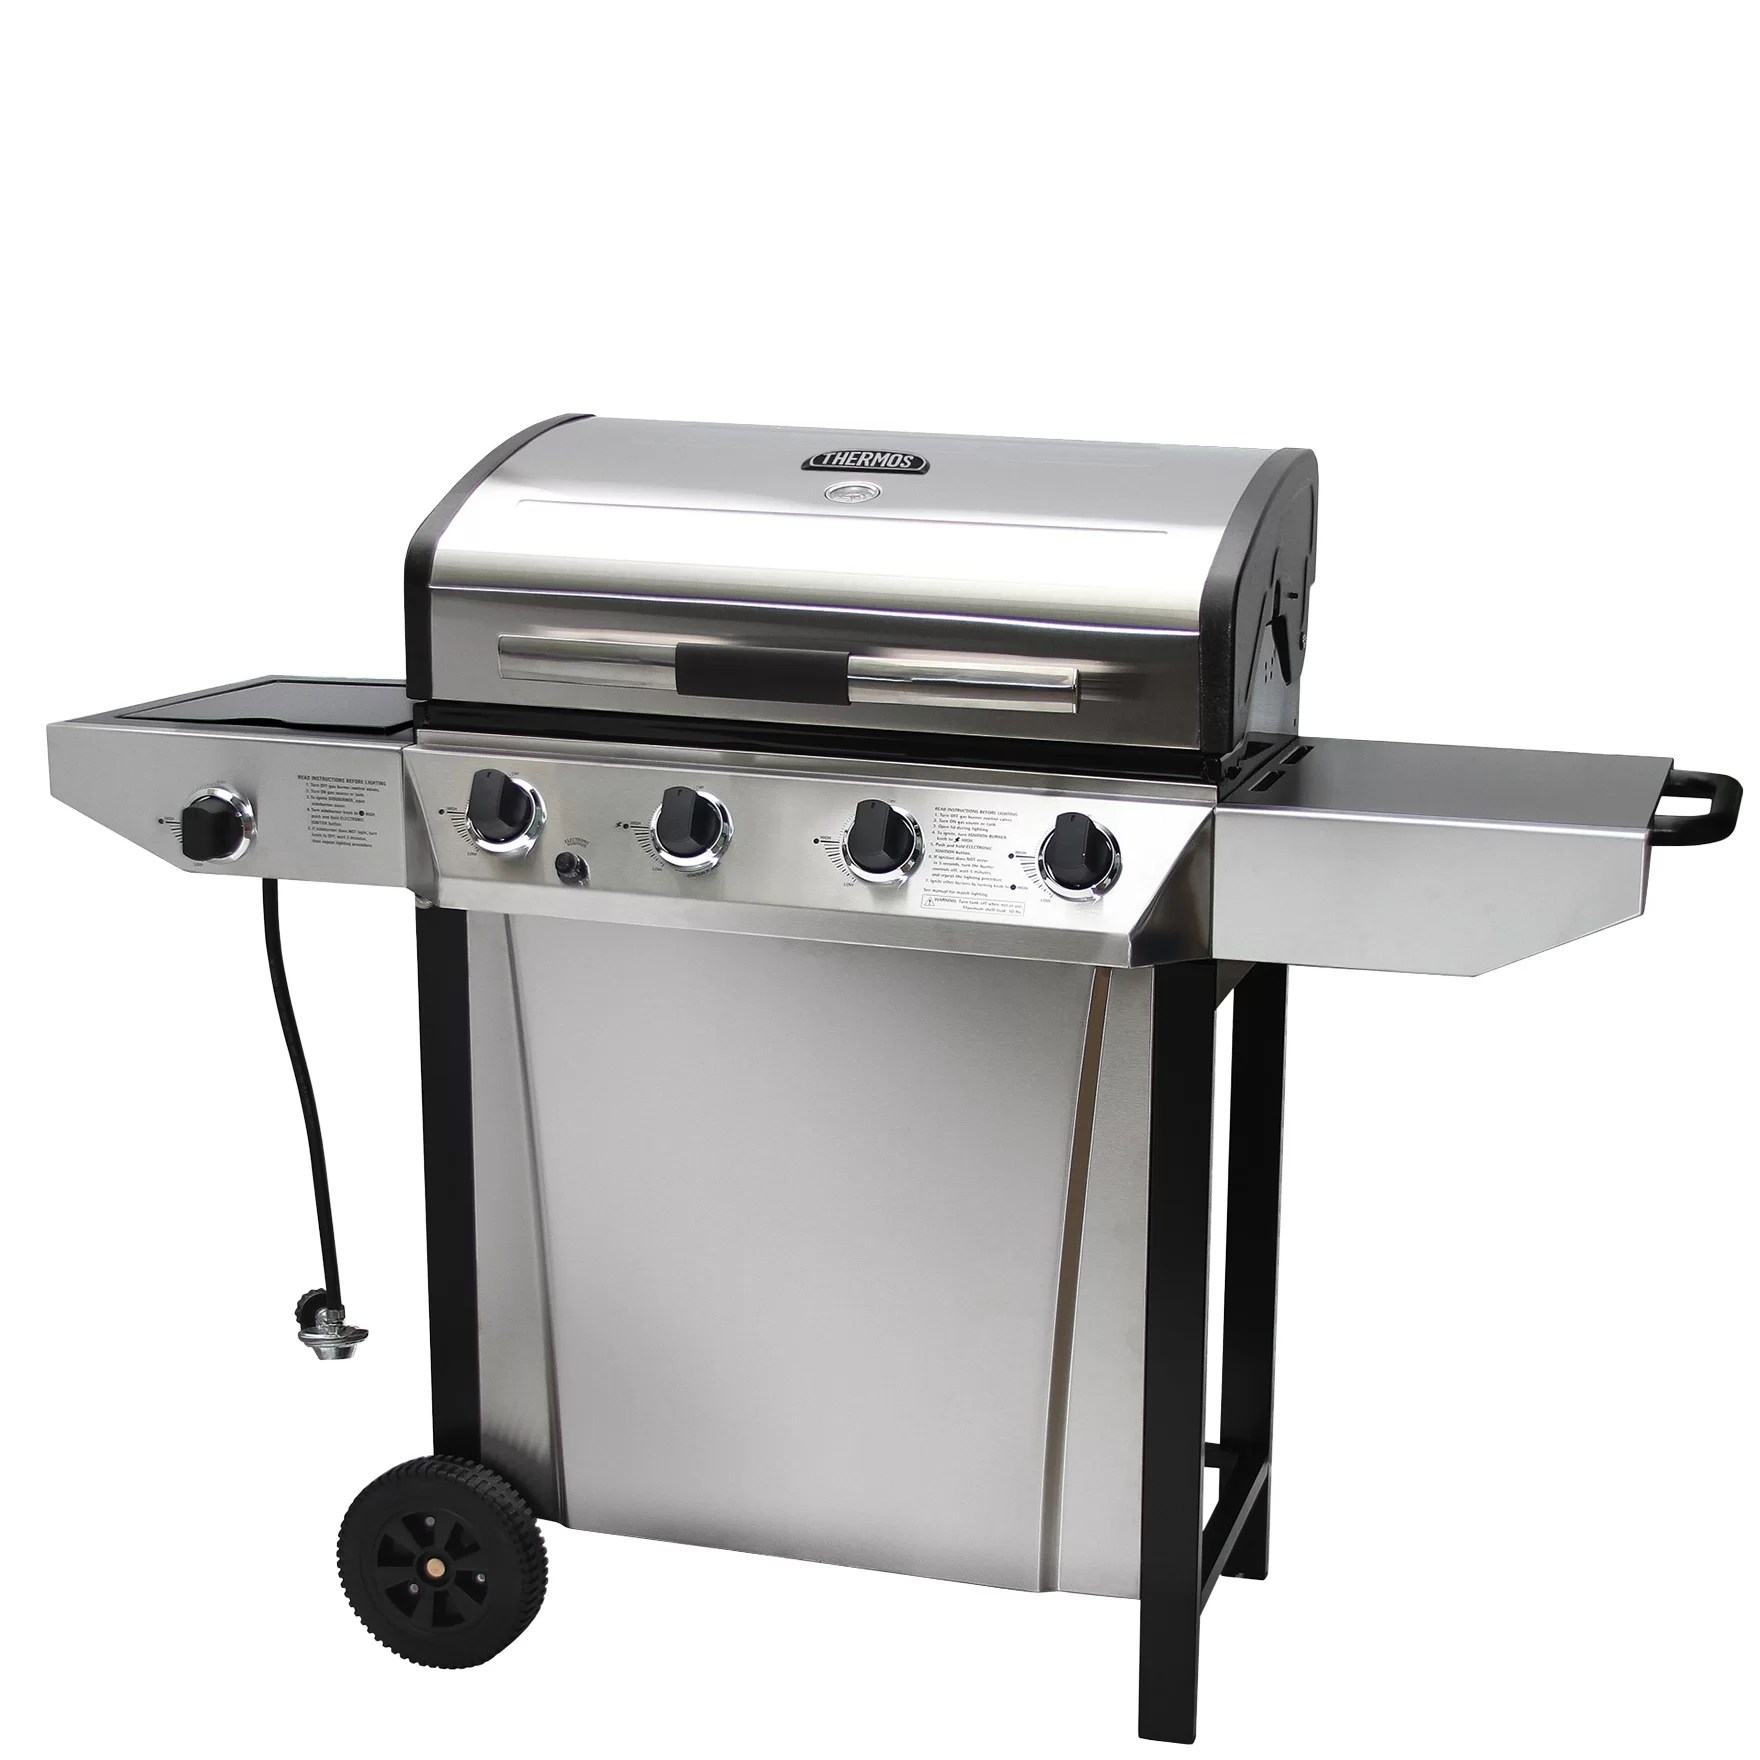 Outdoor Grill Thermos 4 Burner Liquid Propane Gas Grill With Side Shelves